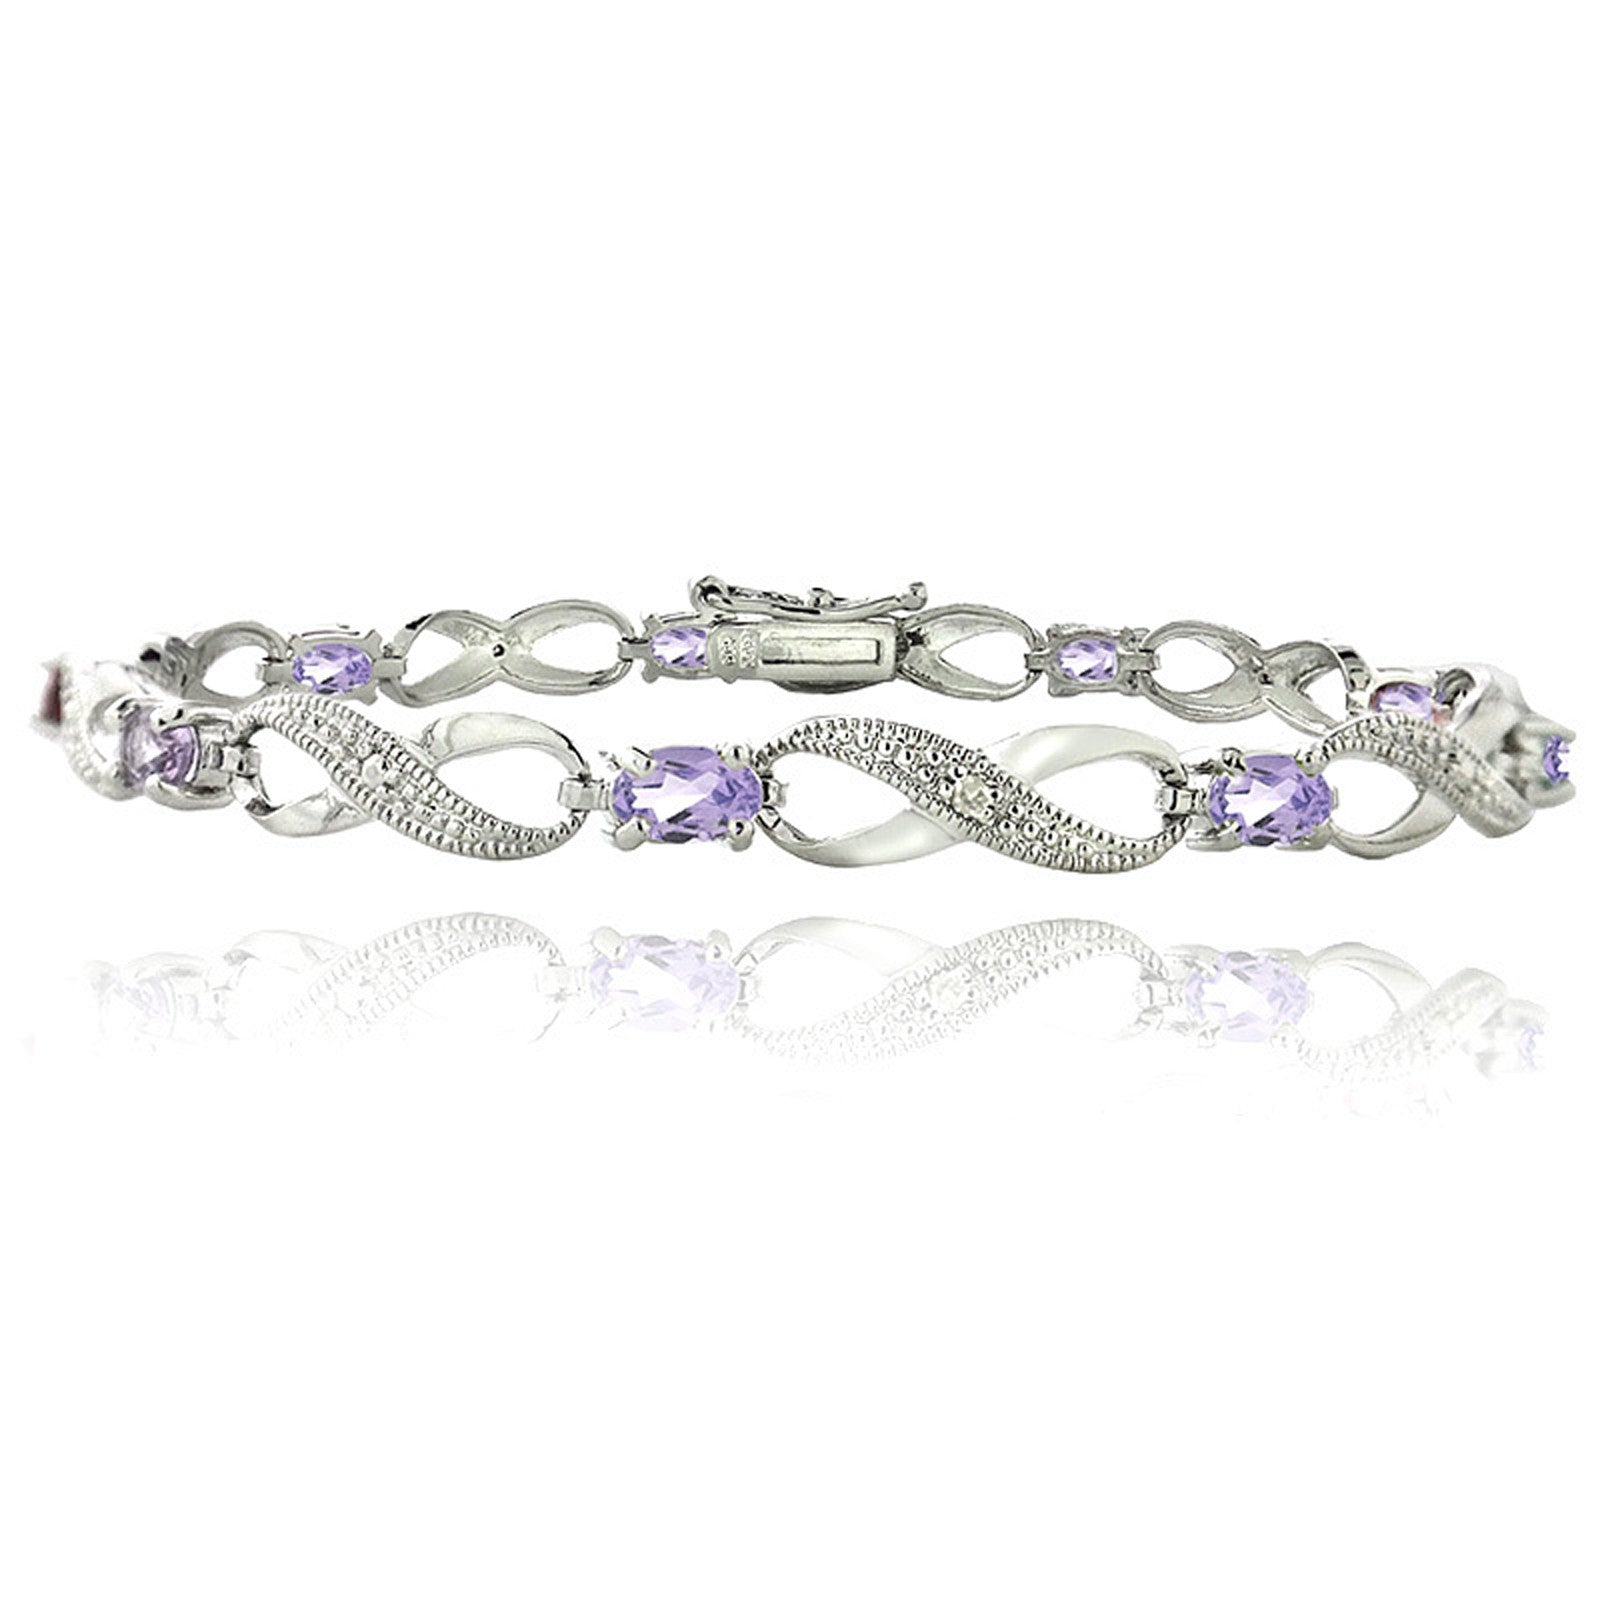 Infinity Bracelet With Diamond & Gem Accents in a Linked Style - Amethyst